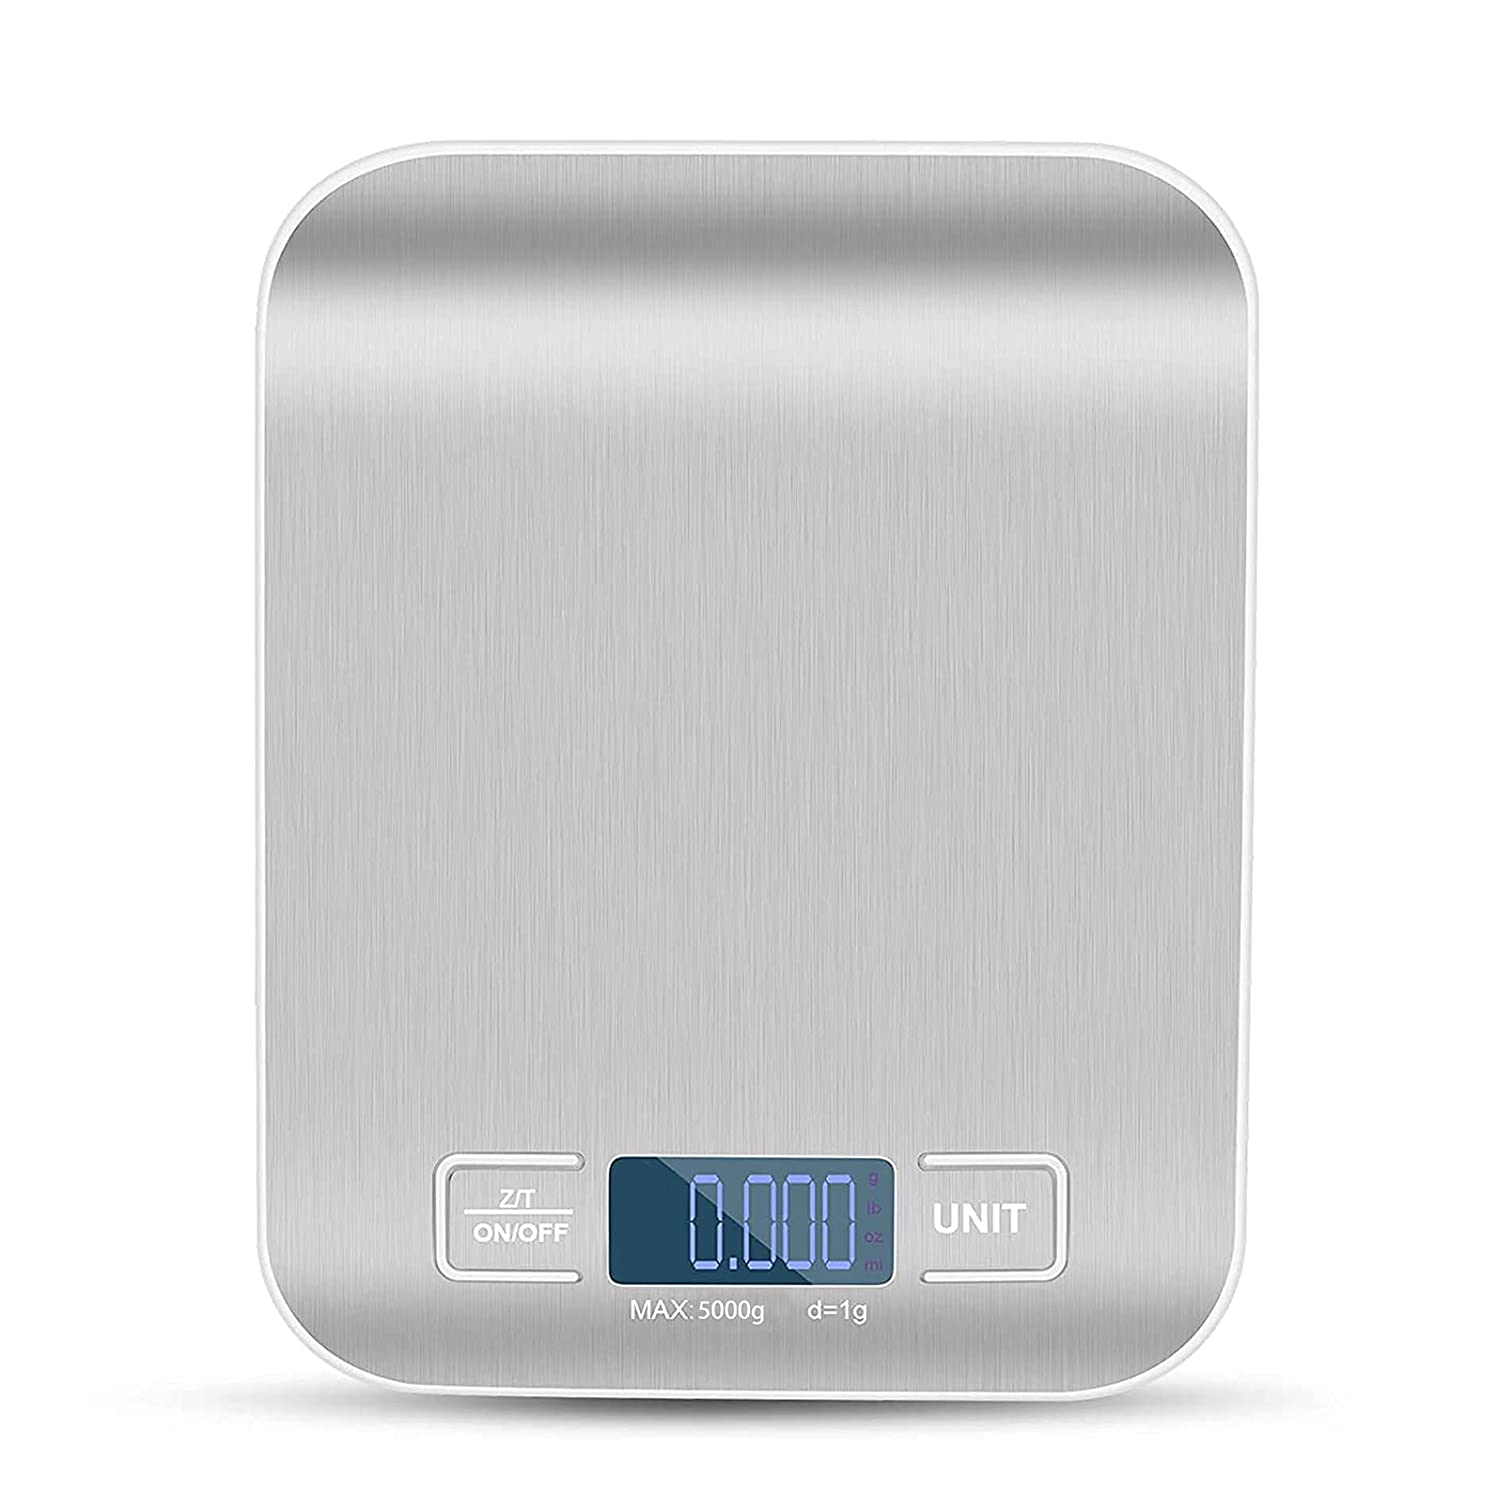 Ccfetch Kitchen Digital Scale Weight, Precision Food Scale 11lb/5kg, Scale for Food Grams and Ounces, Dietary Balance, Weight Loss, Baking, Cooking (Batteries Included)